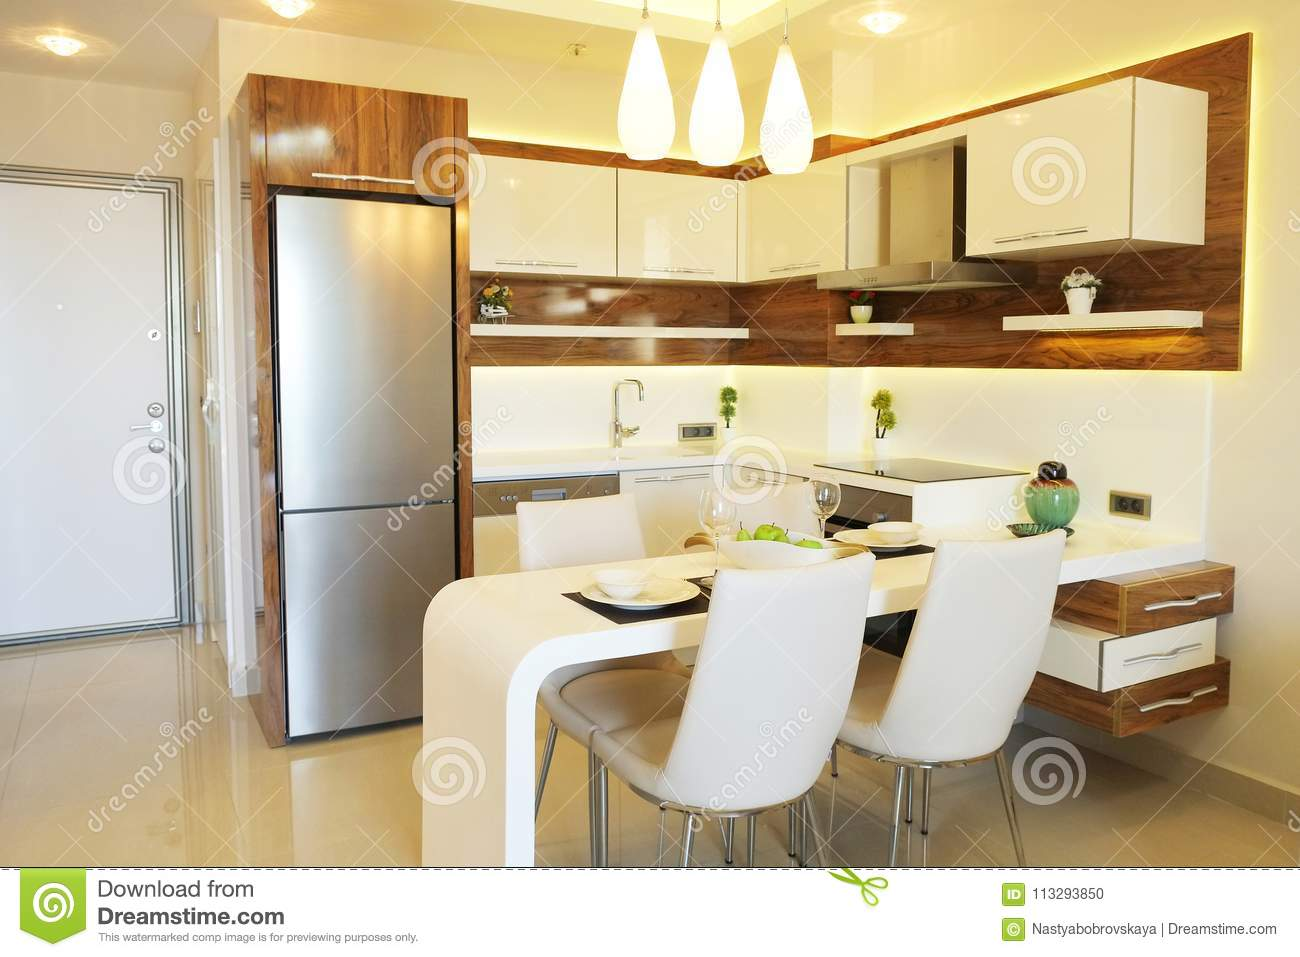 Beautiful Sun Side Appartment With Simple Minimalistic Modern Interior Design Open Plan Kitchen Living Room In Sunlight Stock Photo Image Of Modern Appliances 113293850